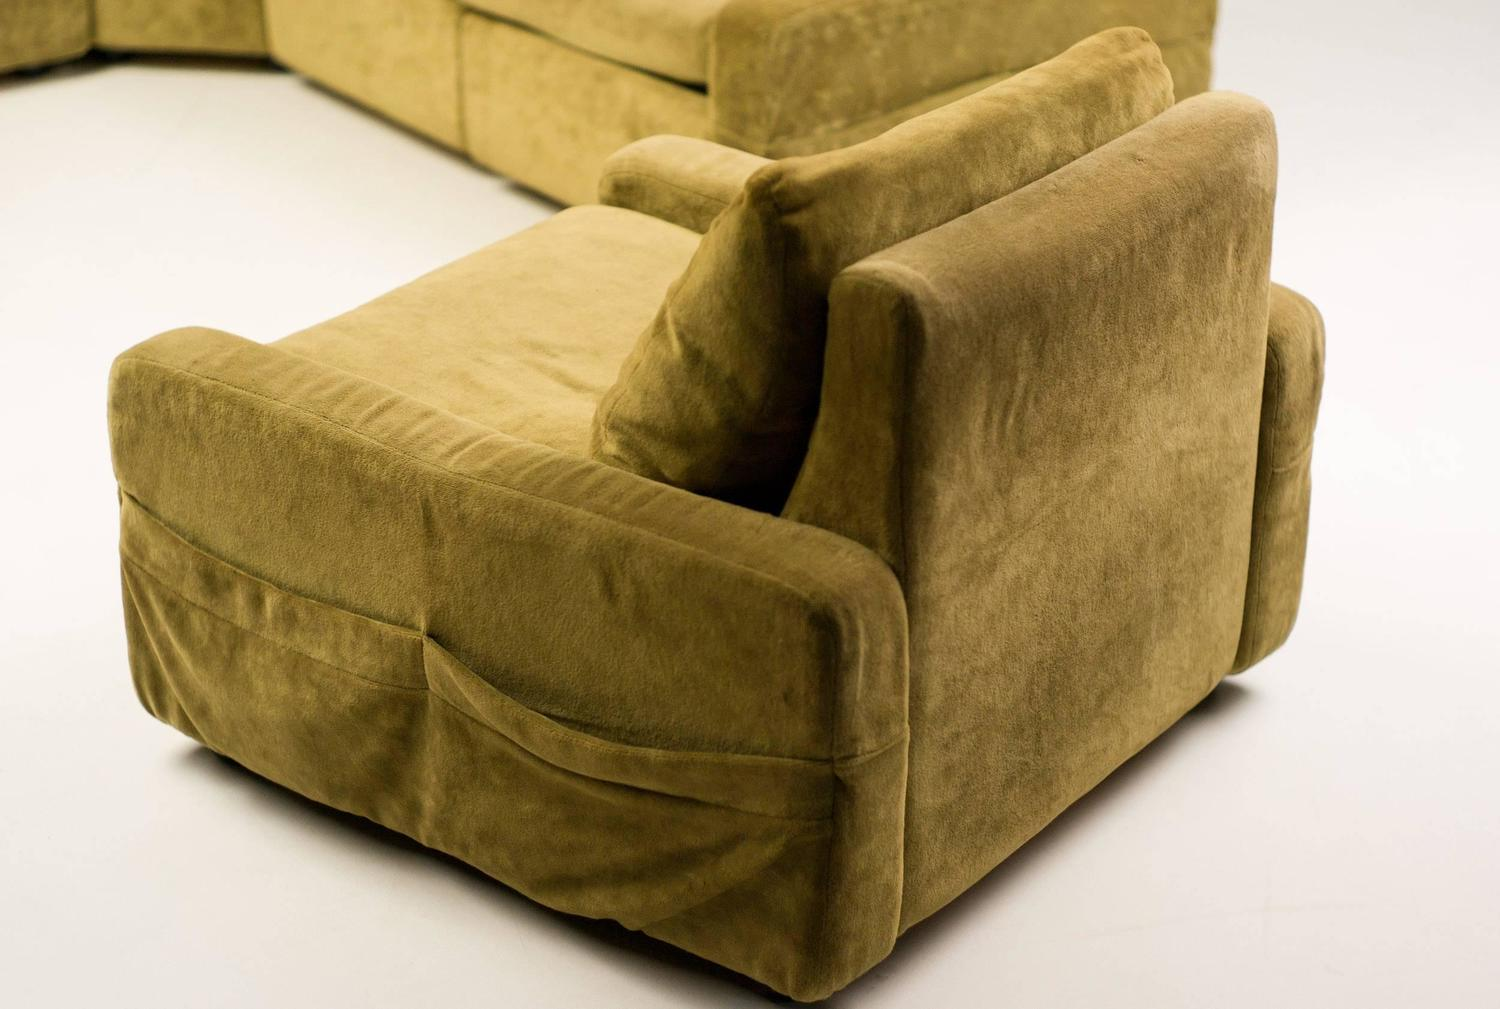 Walter knoll modular sofa in green velvet for sale at 1stdibs for Sofa 75 cm tief